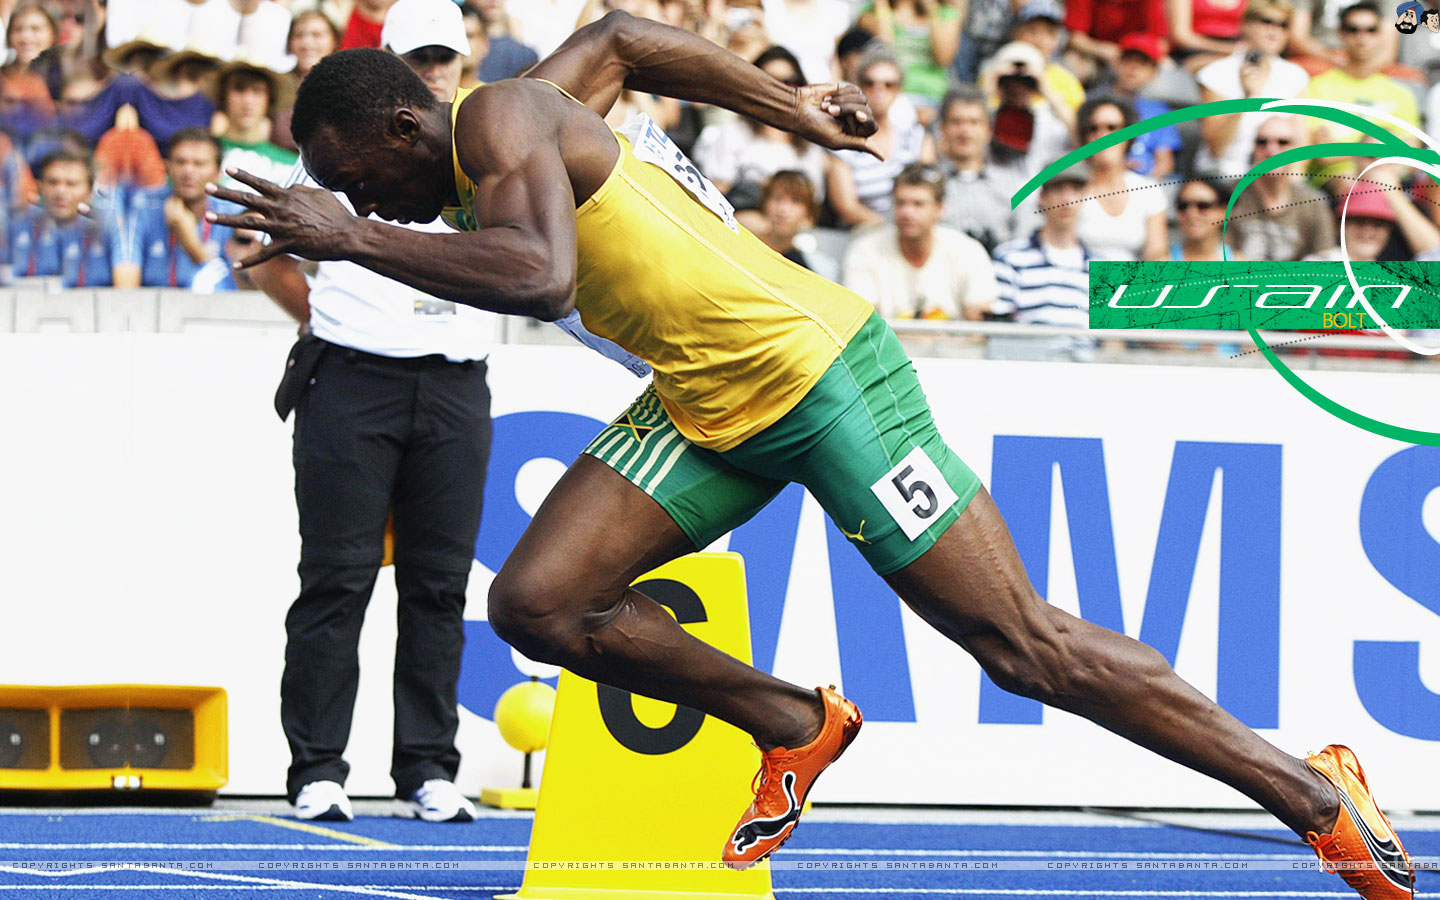 All about sports stars - Usain bolt running hd photos ...